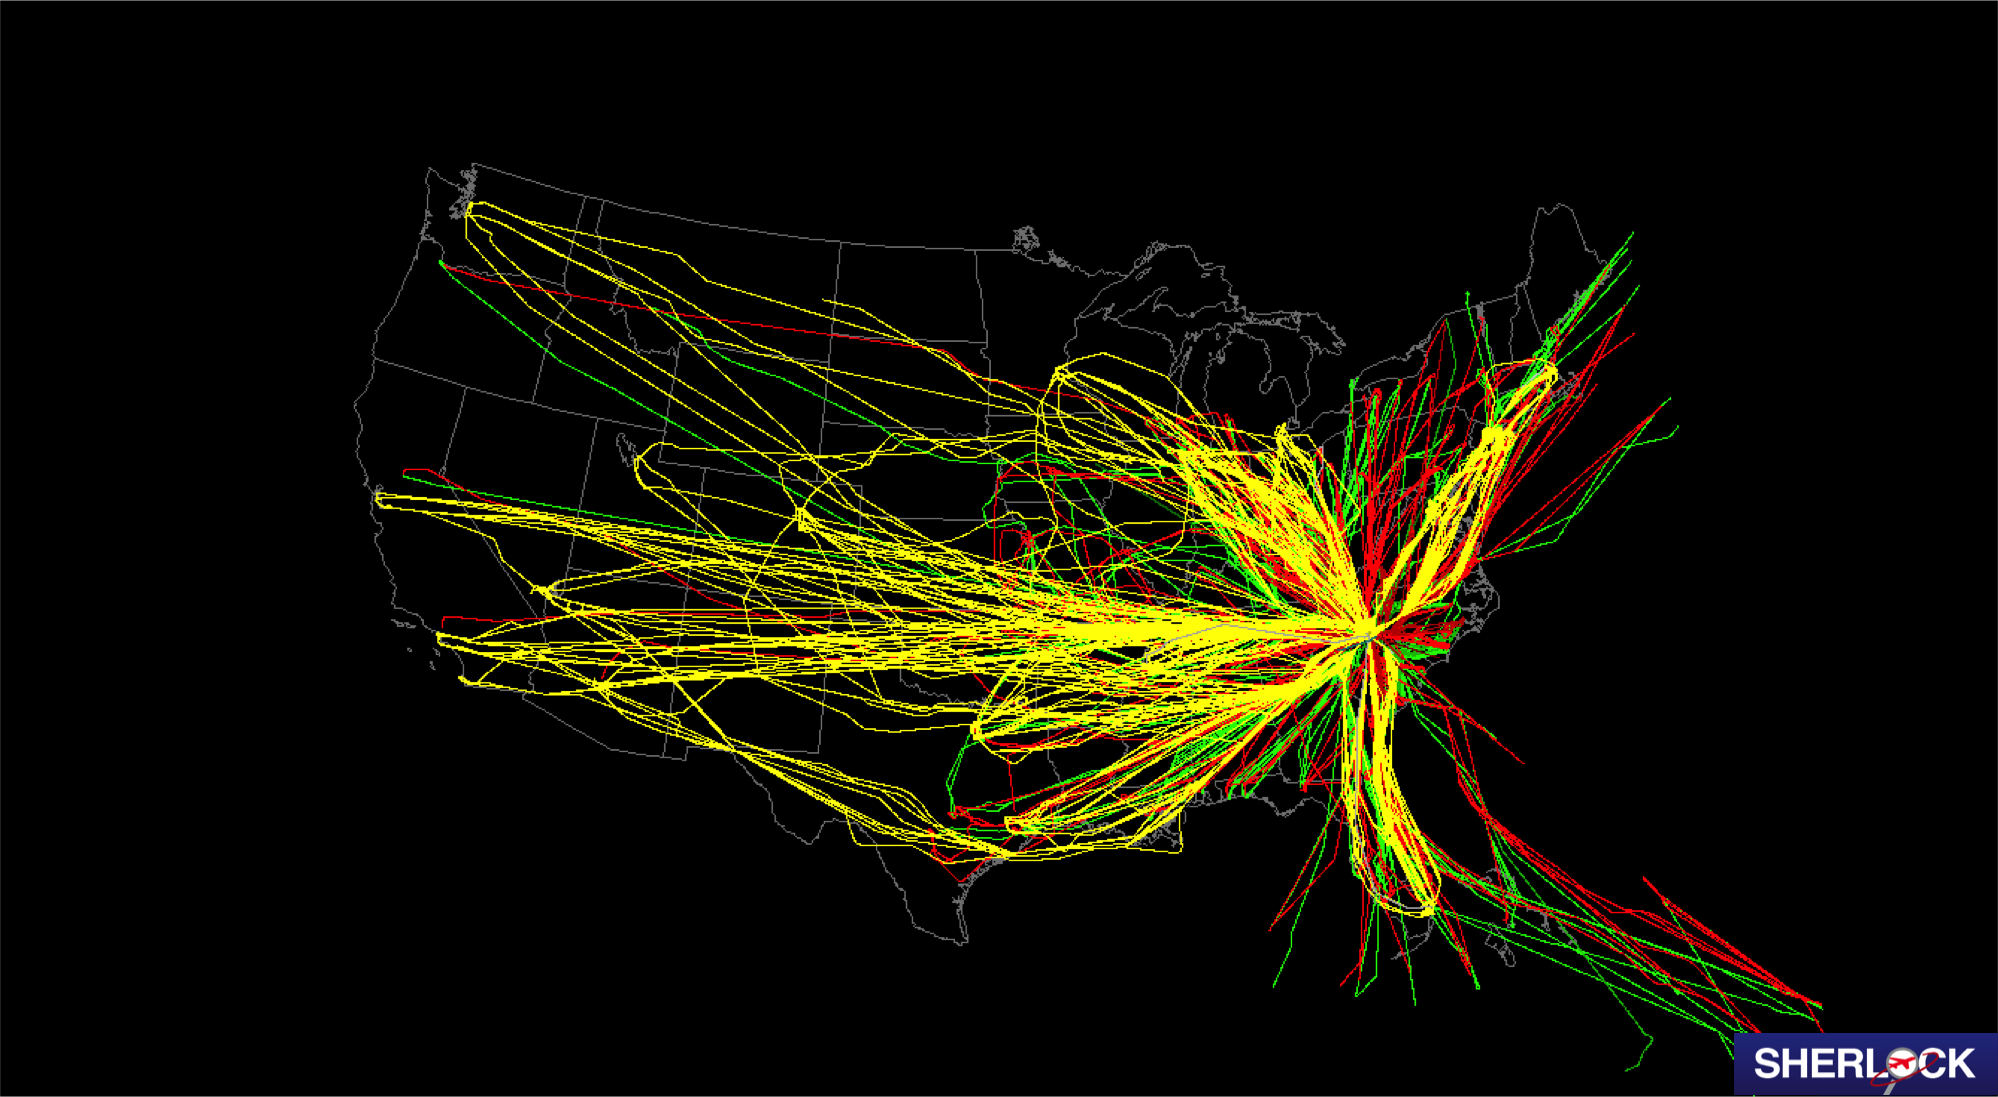 map of the united states showing colored air traffic lines crossing the country